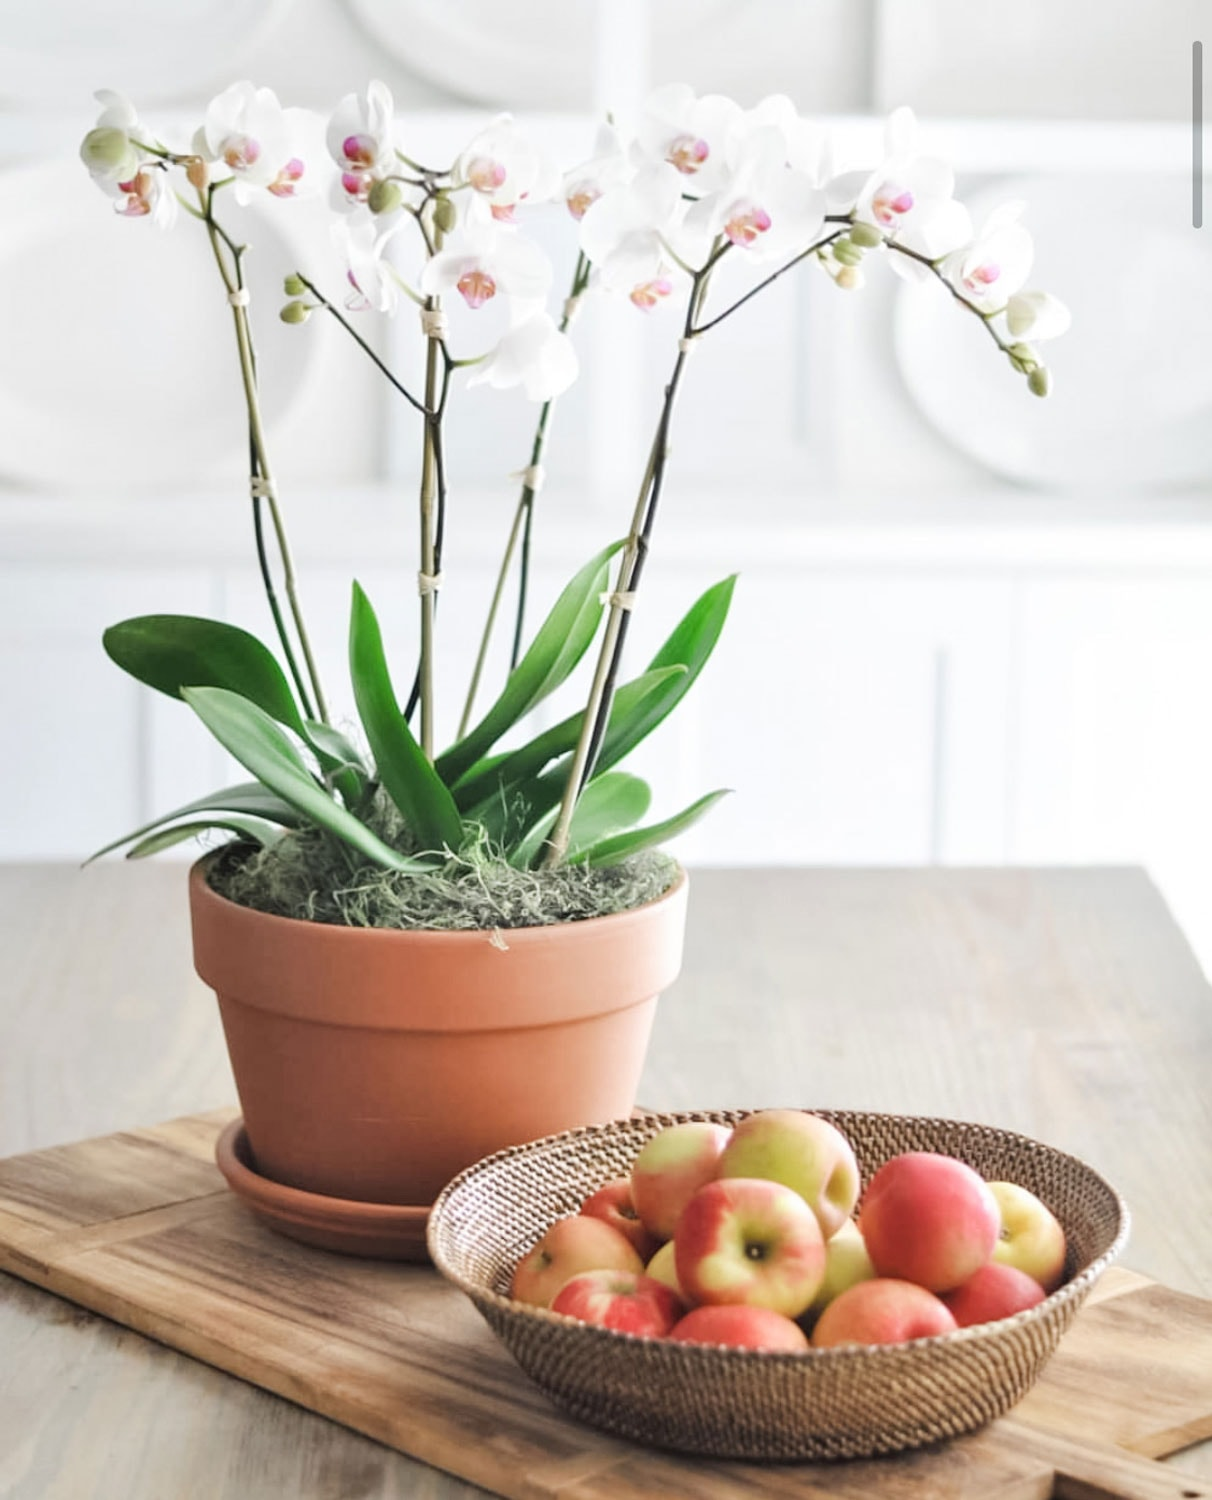 orchids in pot and basket of apples